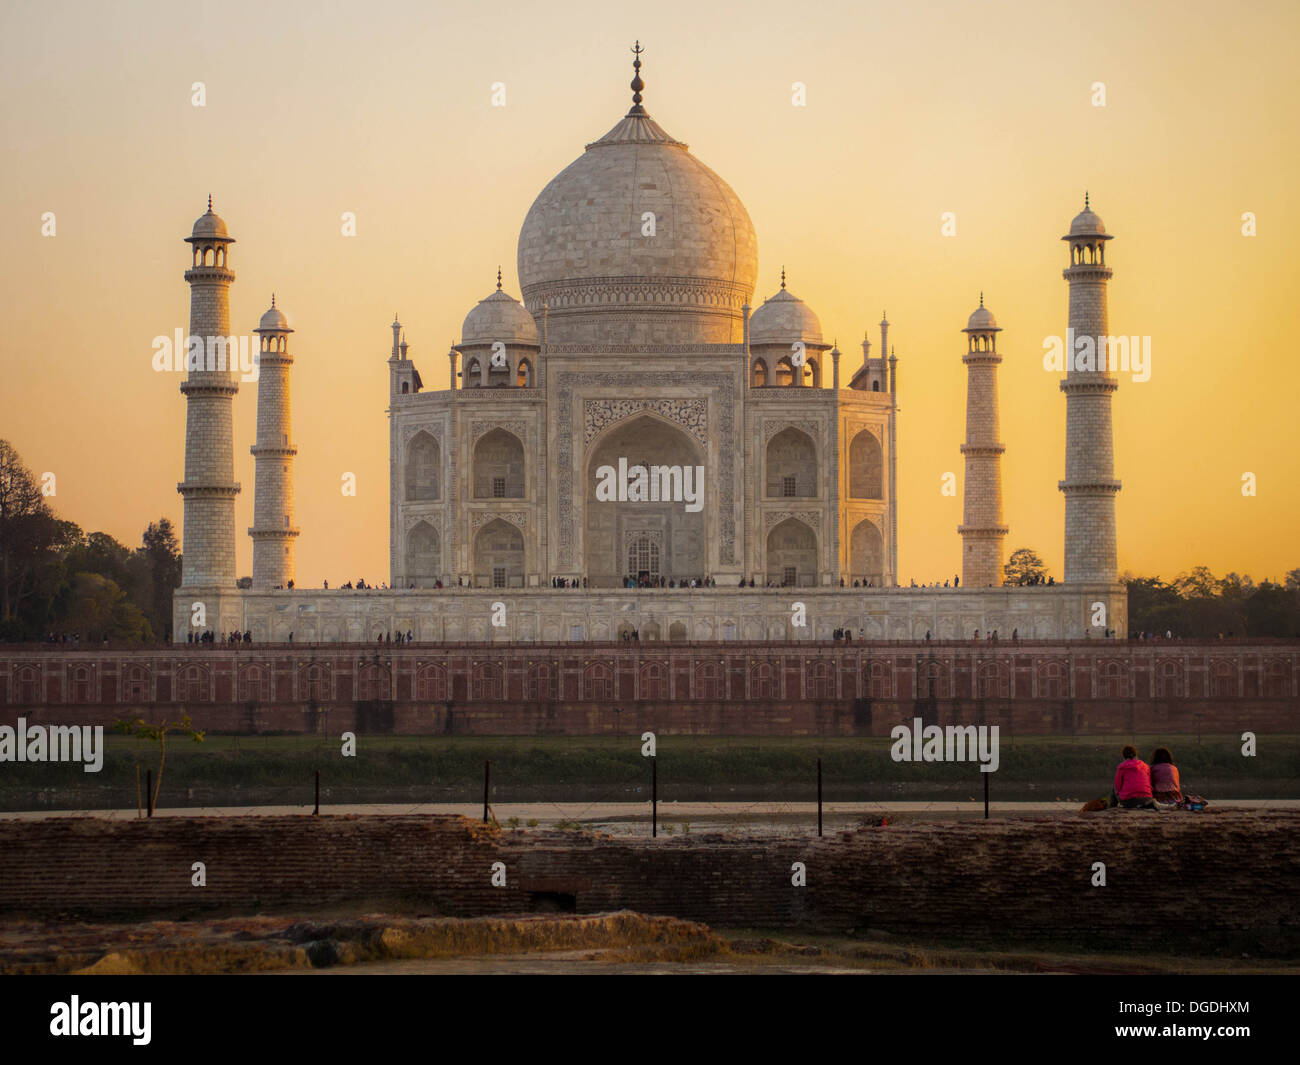 The Taj Mahal at sunset, Agra, India. Stock Photo